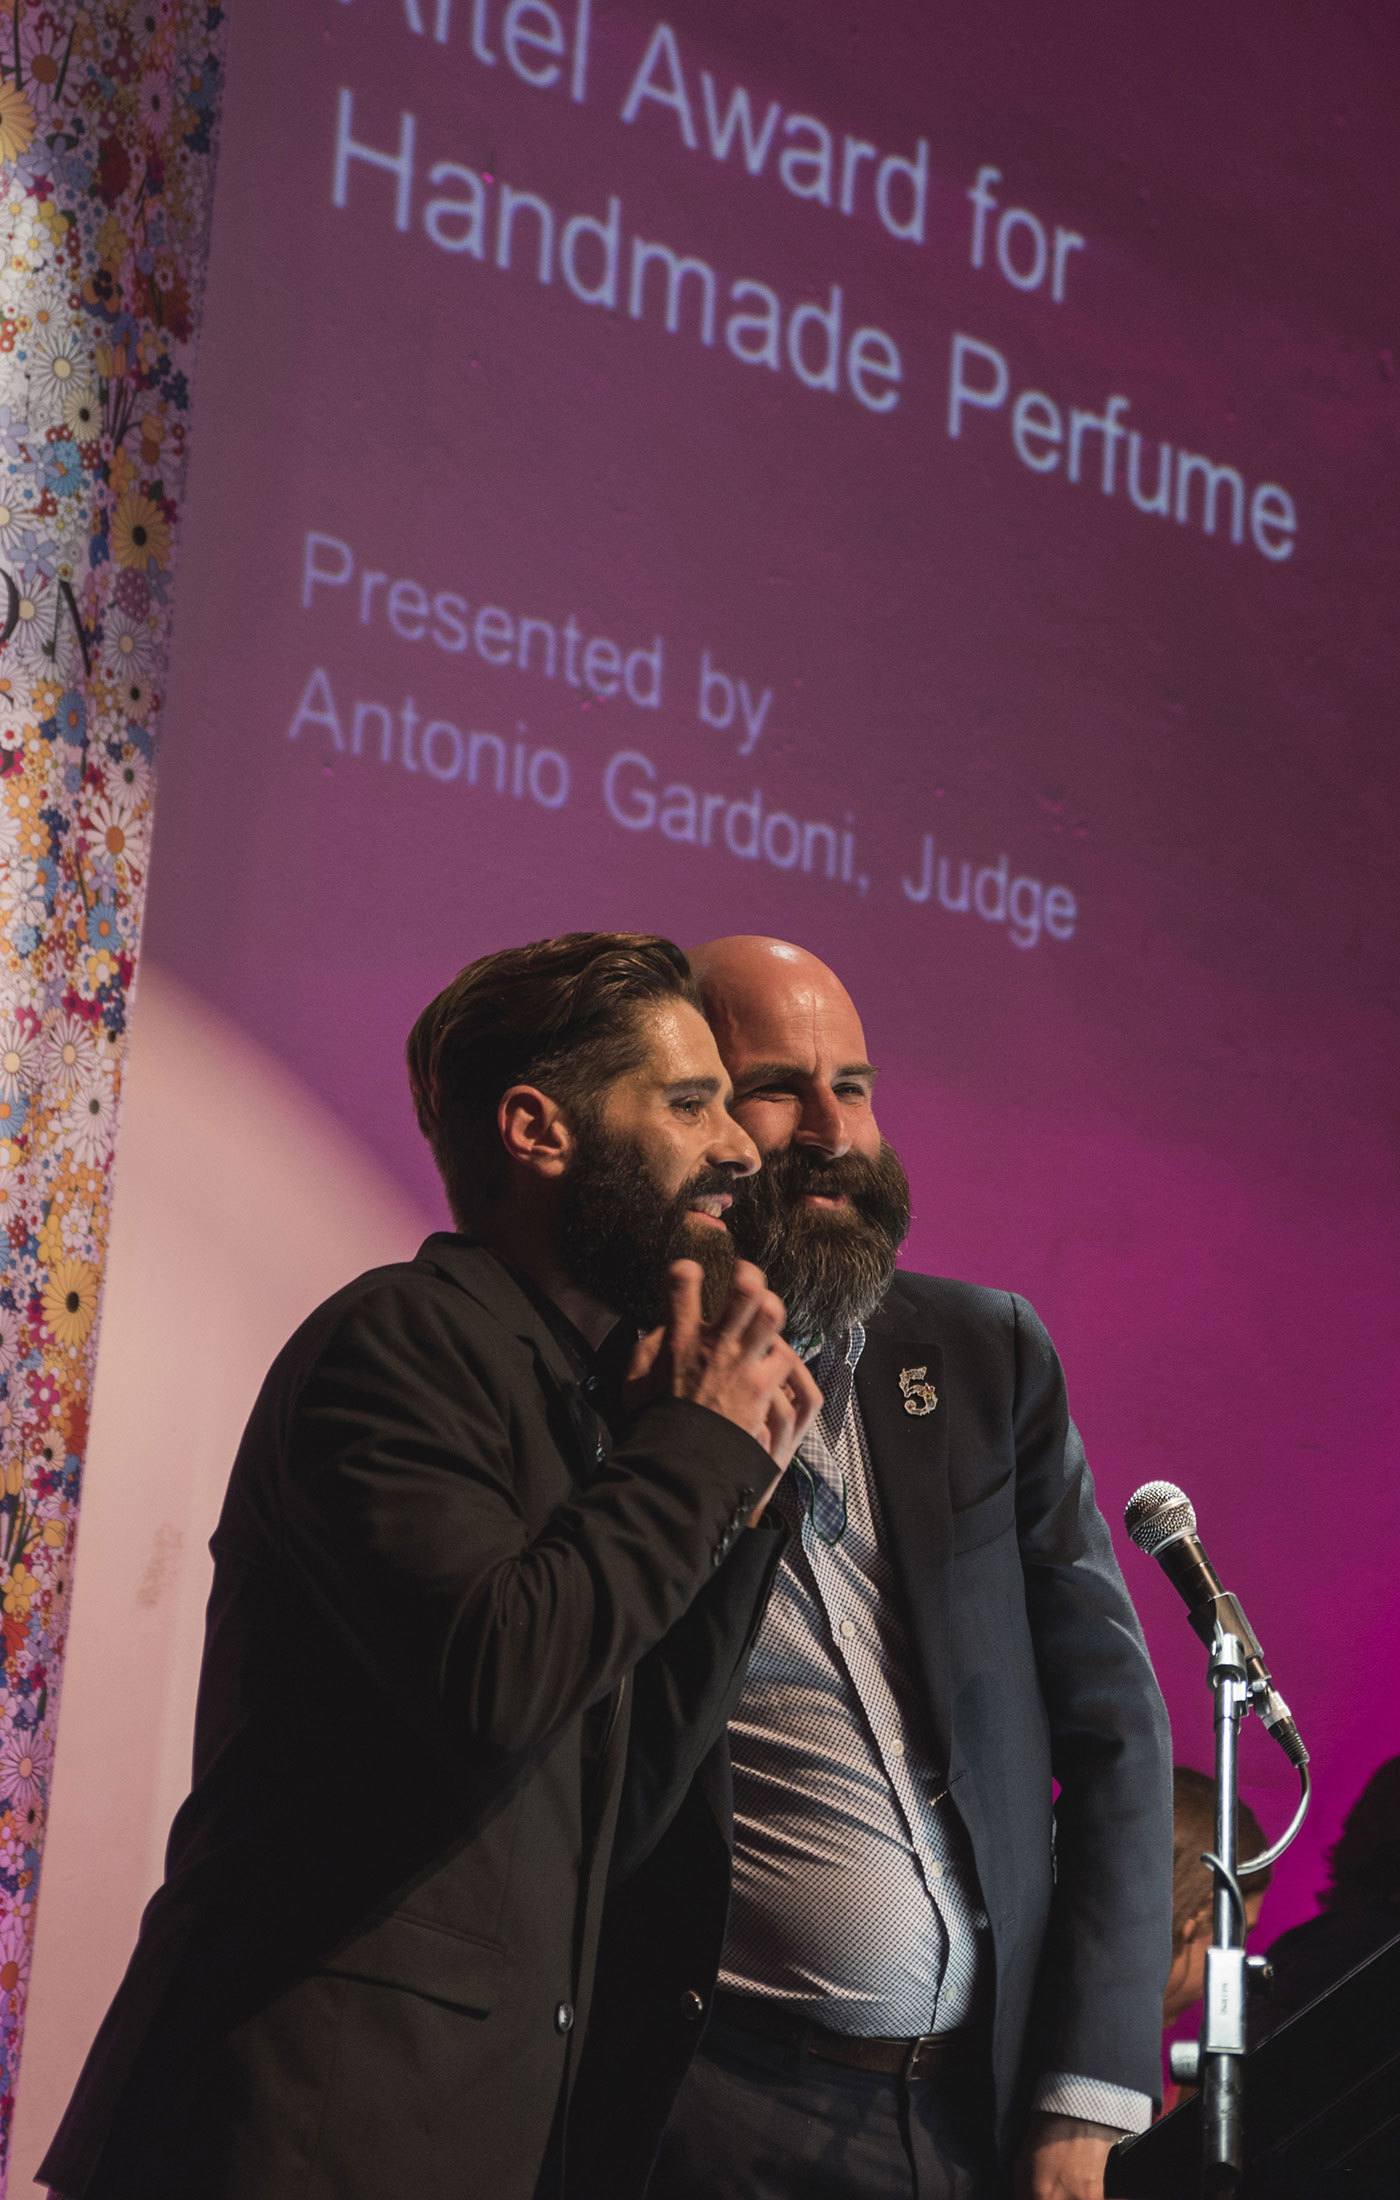 Miguel Matos and Antonio Gardoni at The Art and Olfaction Awards, Photo by Marina Chichi